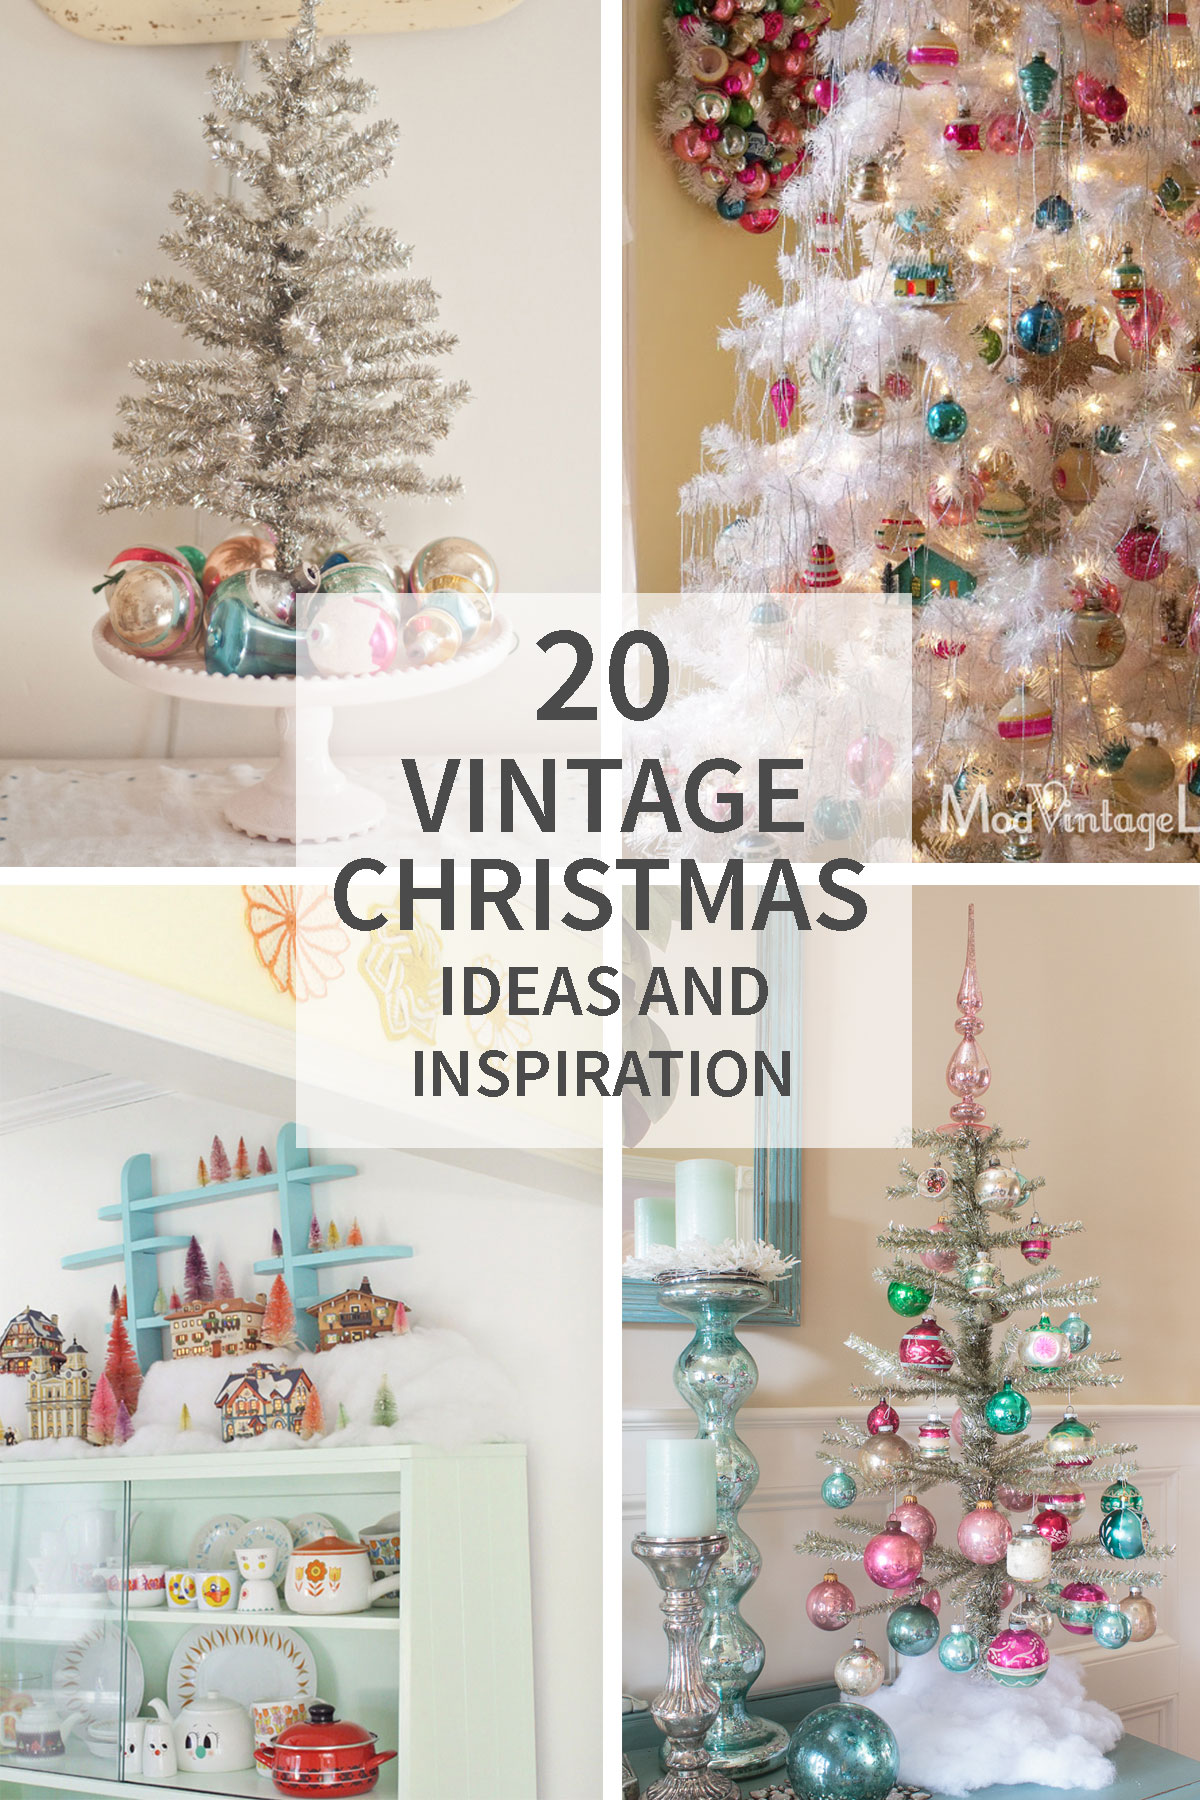 Vintage Christmas Ideas and Inspiration - Tidbits